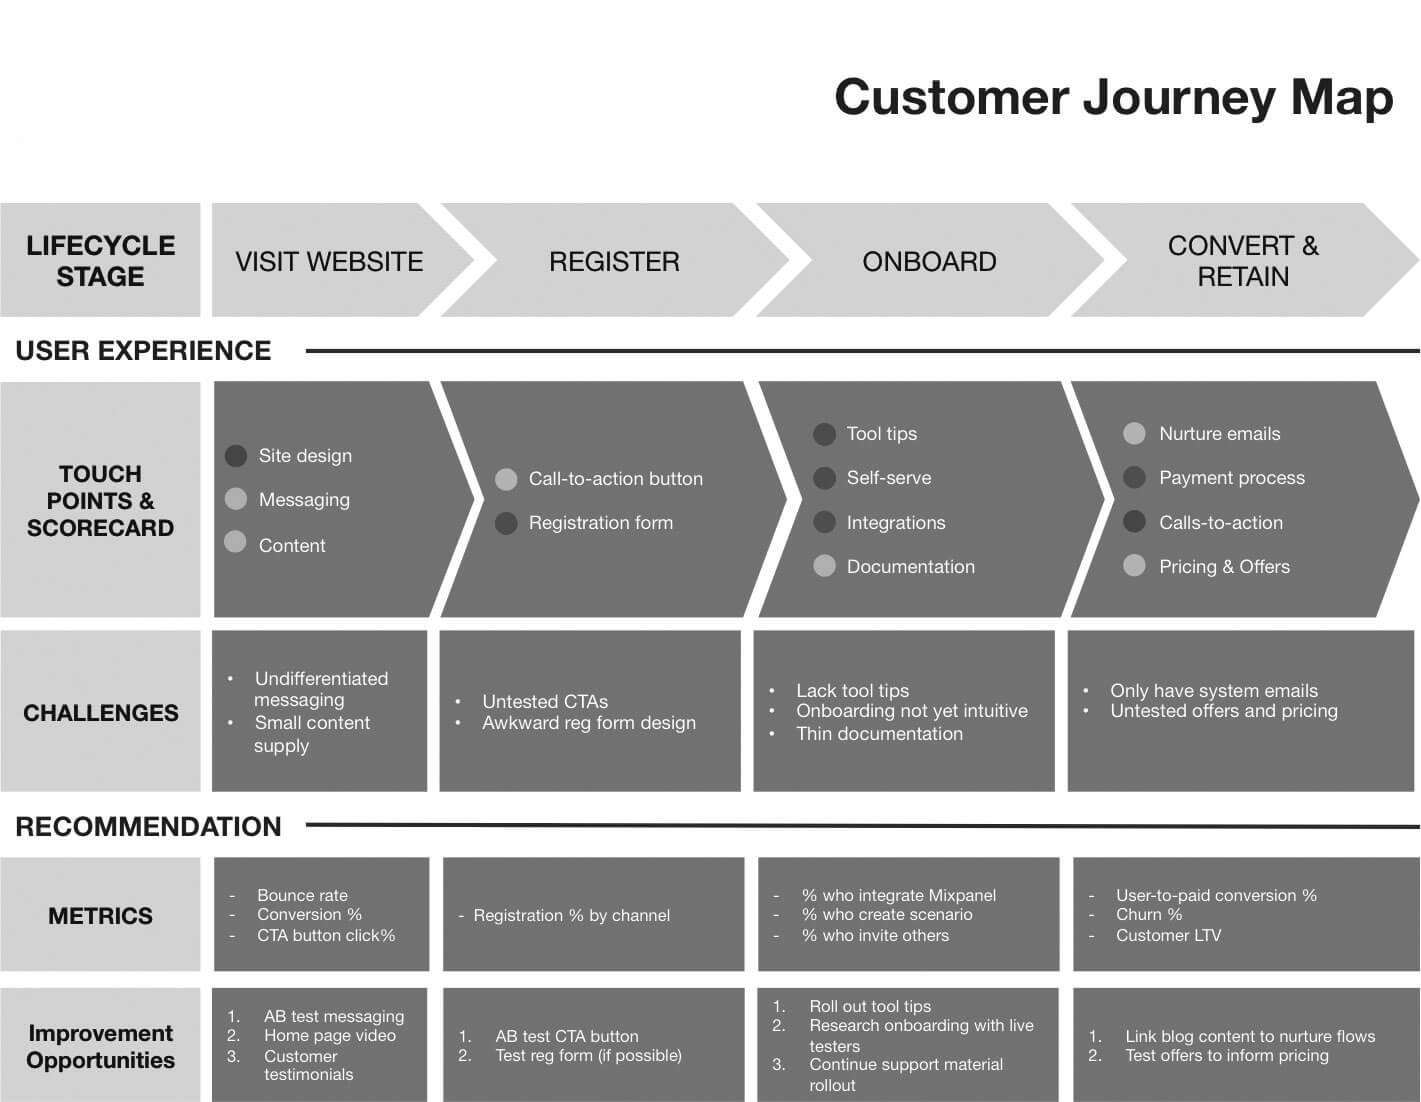 Source: Customer Journey Map Template